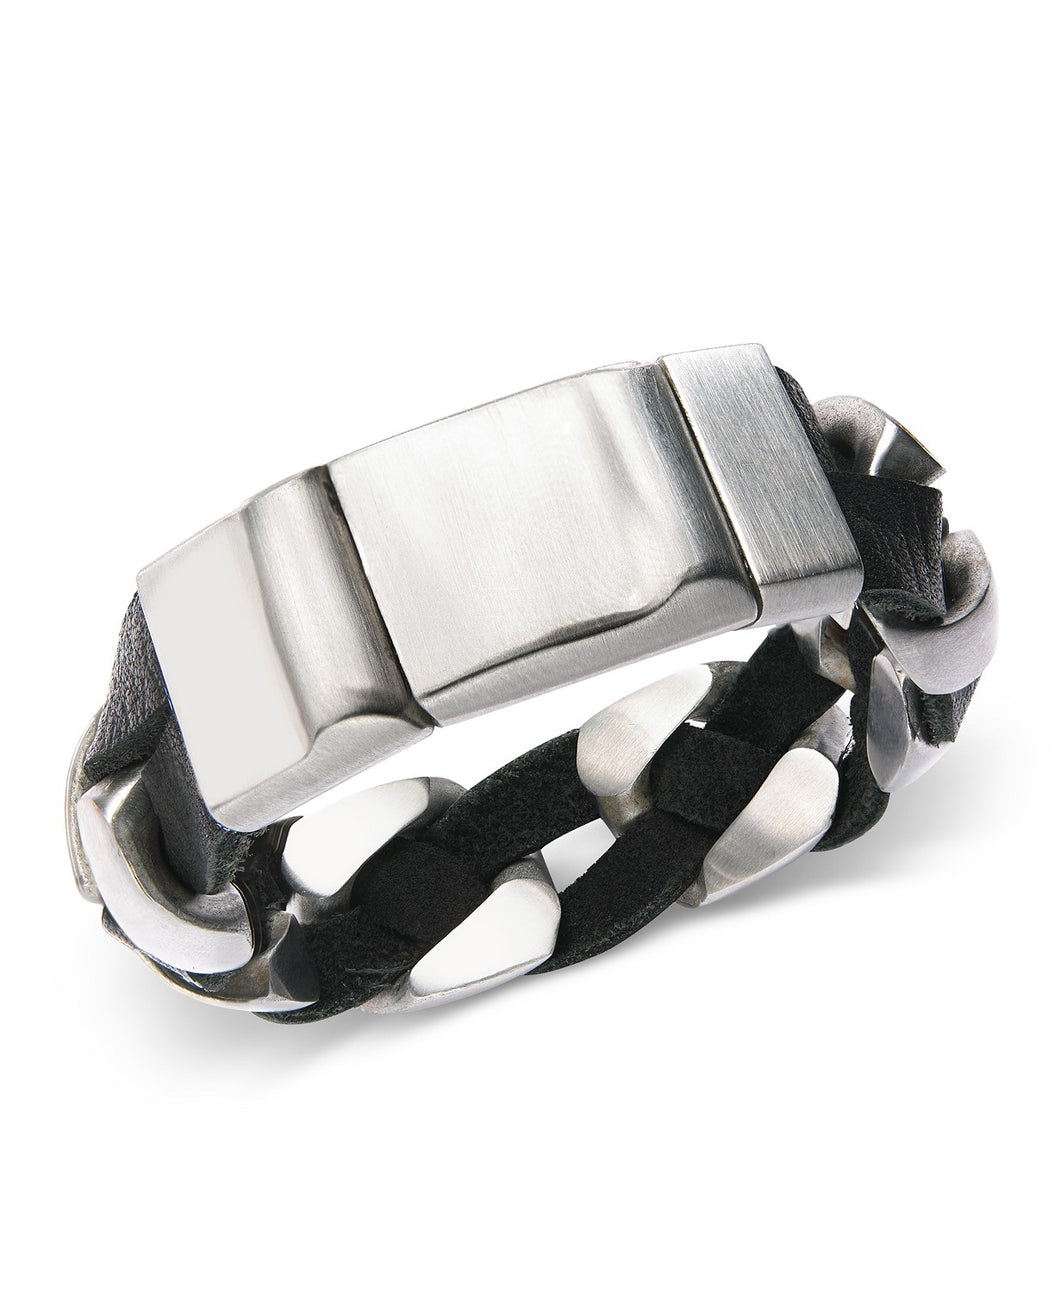 Stainless Steel and Black Leather Chain Bracelet